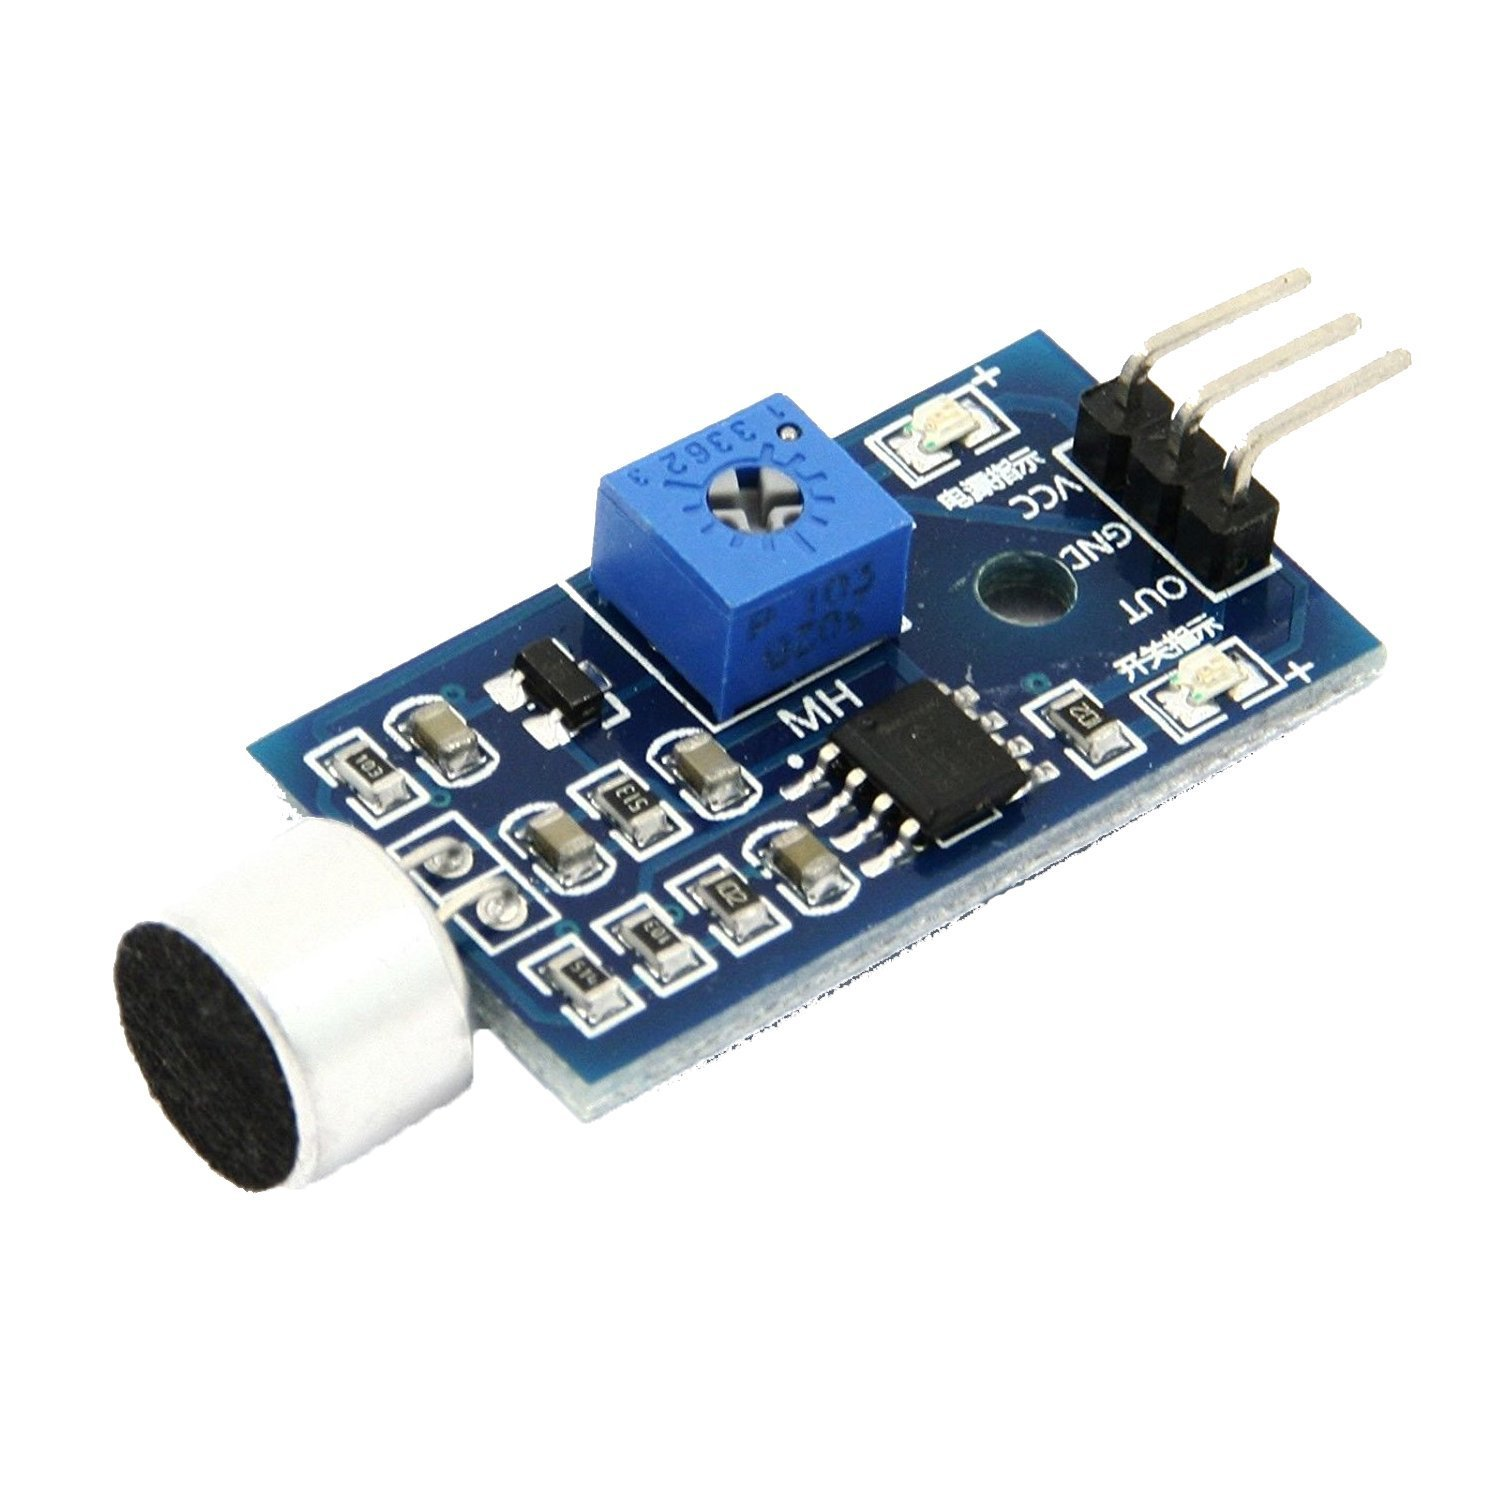 71QaViAvTEL. SL1500 Different types of Sensors for Arduino | Classification, and Applications